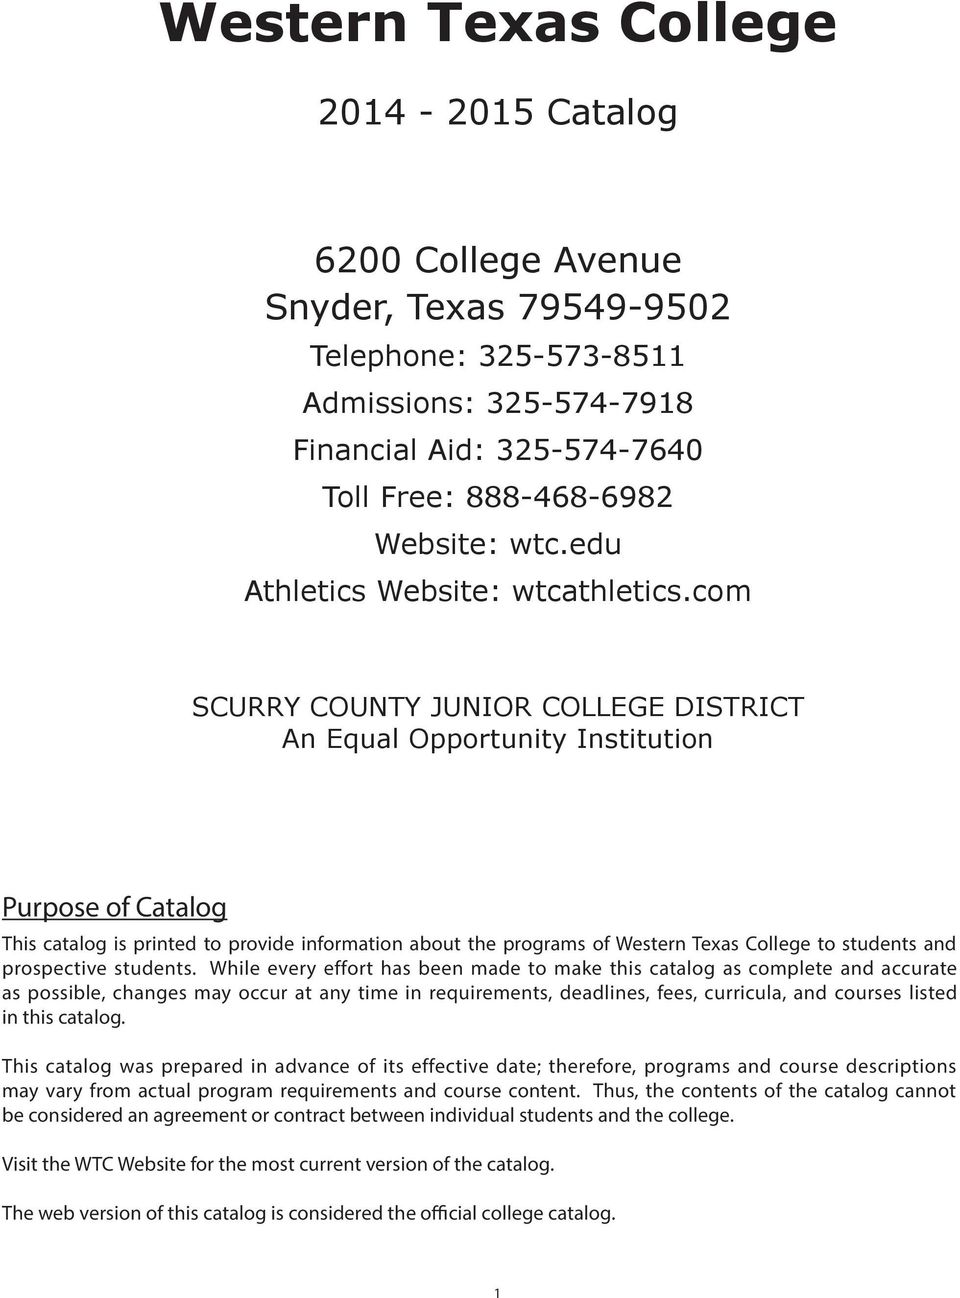 com SCURRY COUNTY JUNIOR COLLEGE DISTRICT An Equal Opportunity Institution Purpose of Catalog This catalog is printed to provide information about the programs of Western Texas College to students